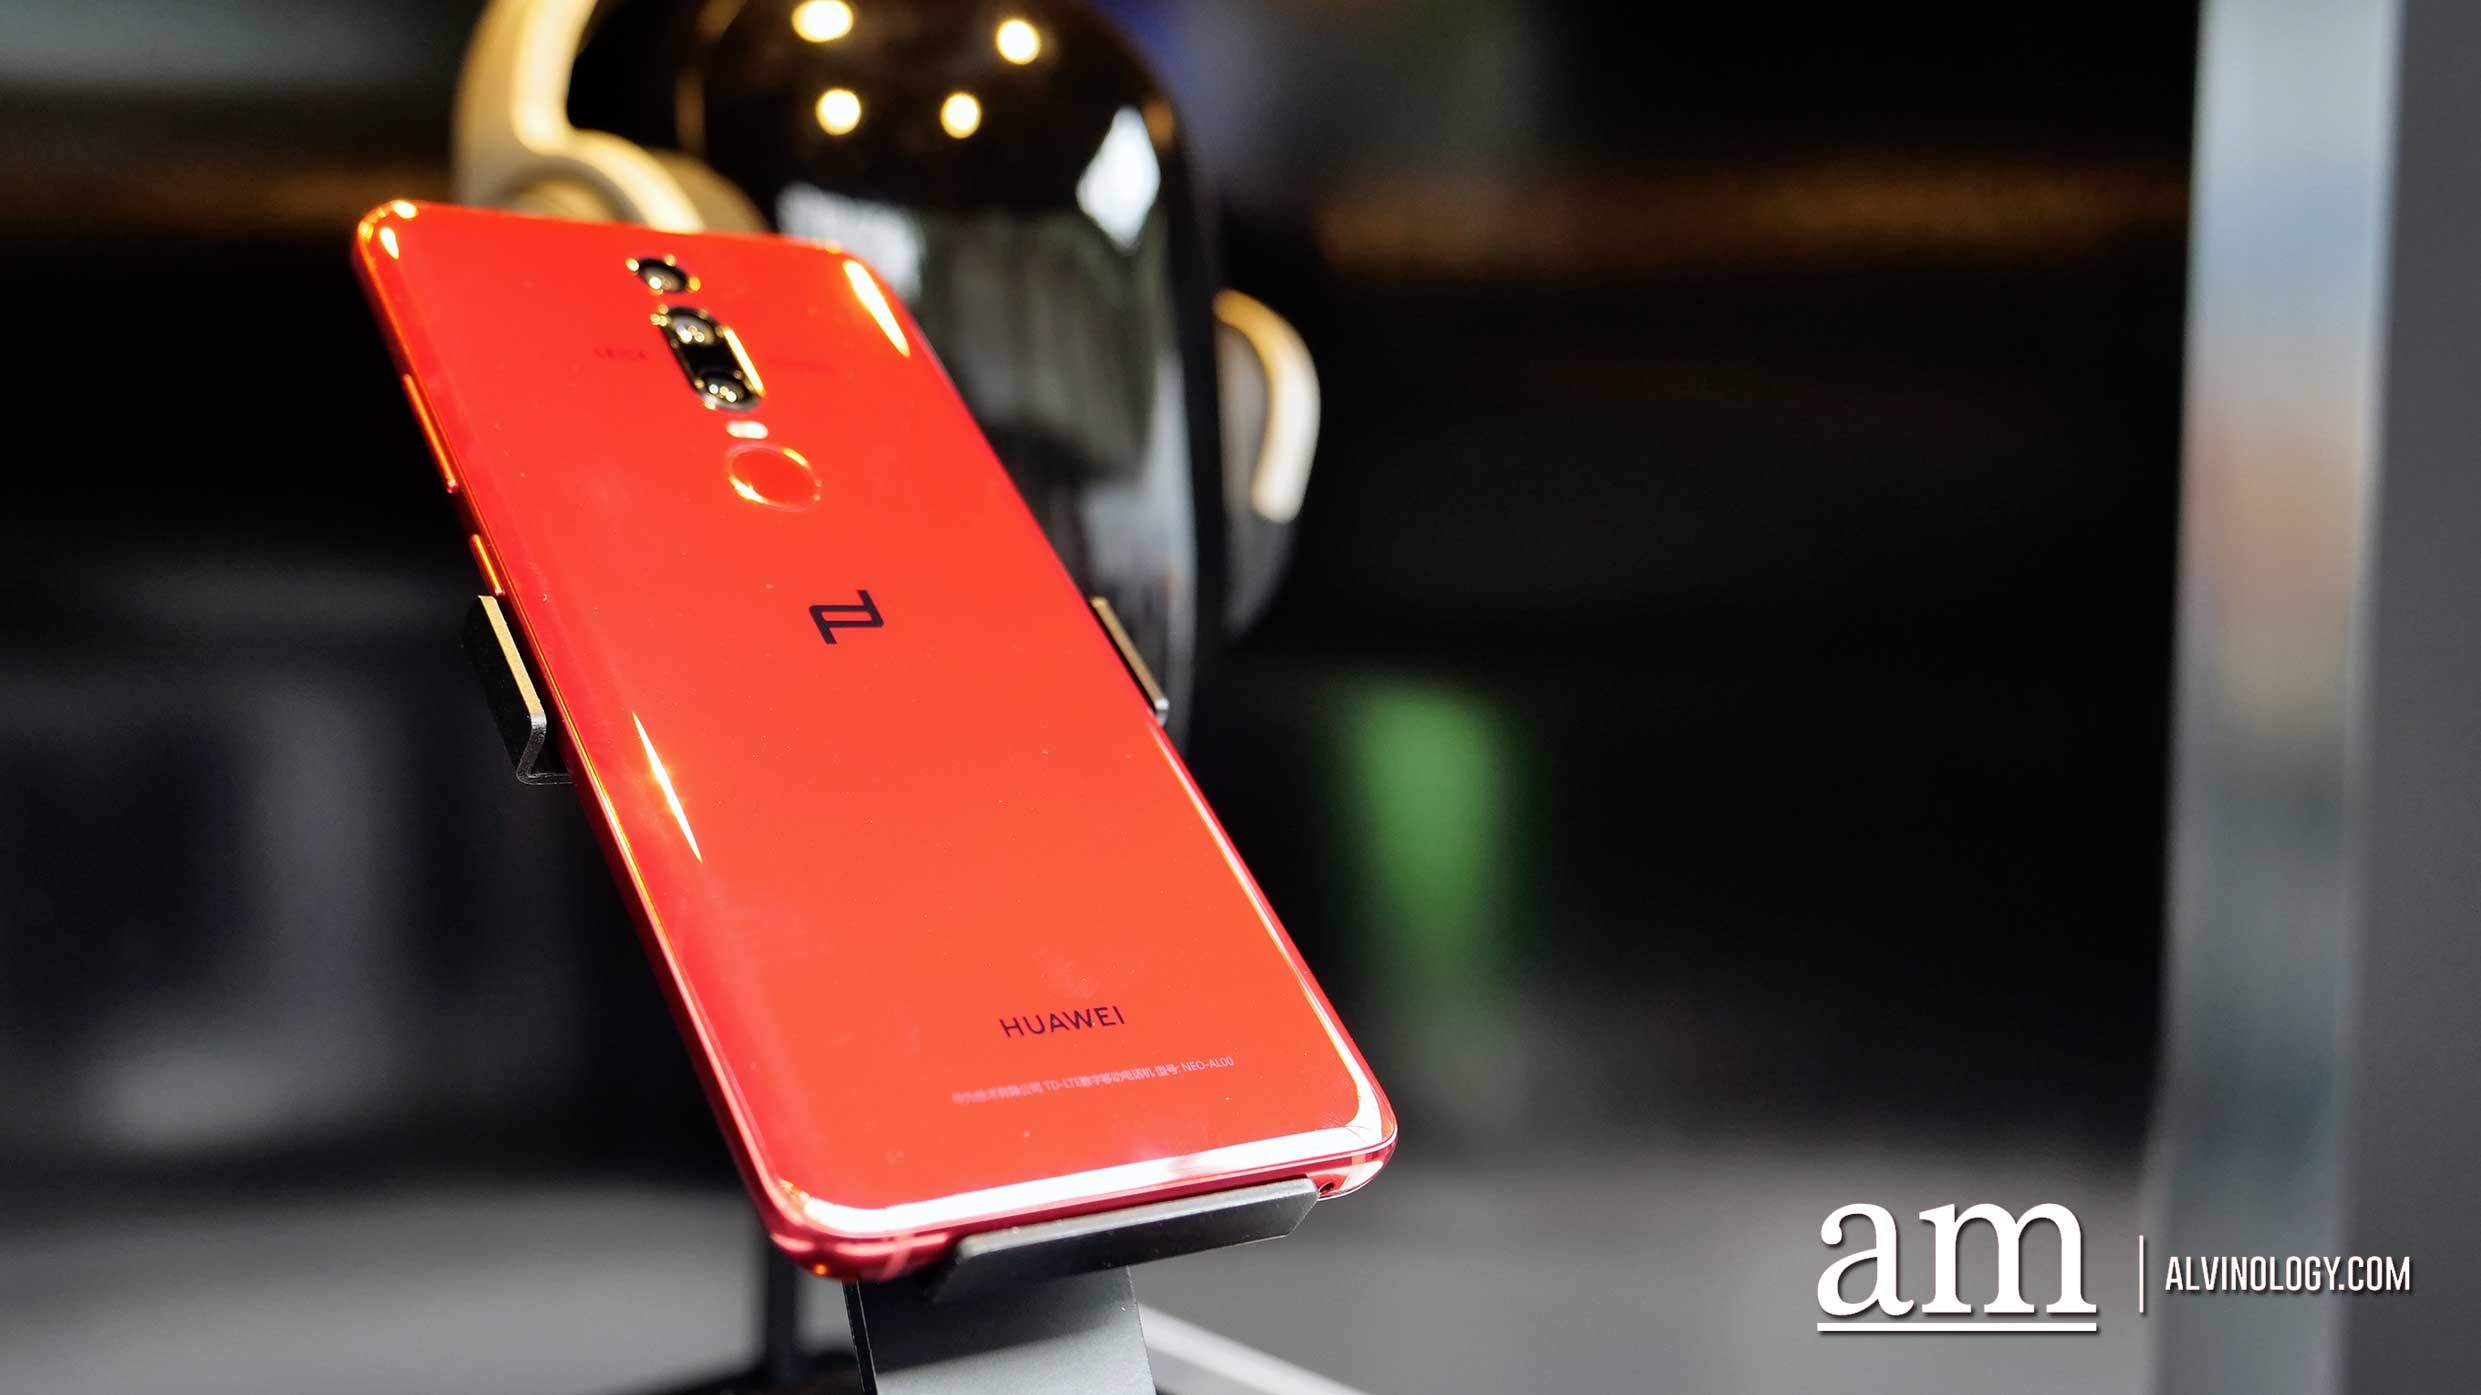 World's most expensive smartphone - PORSCHE DESIGN HUAWEI Mate RS is now available in Singapore - Alvinology